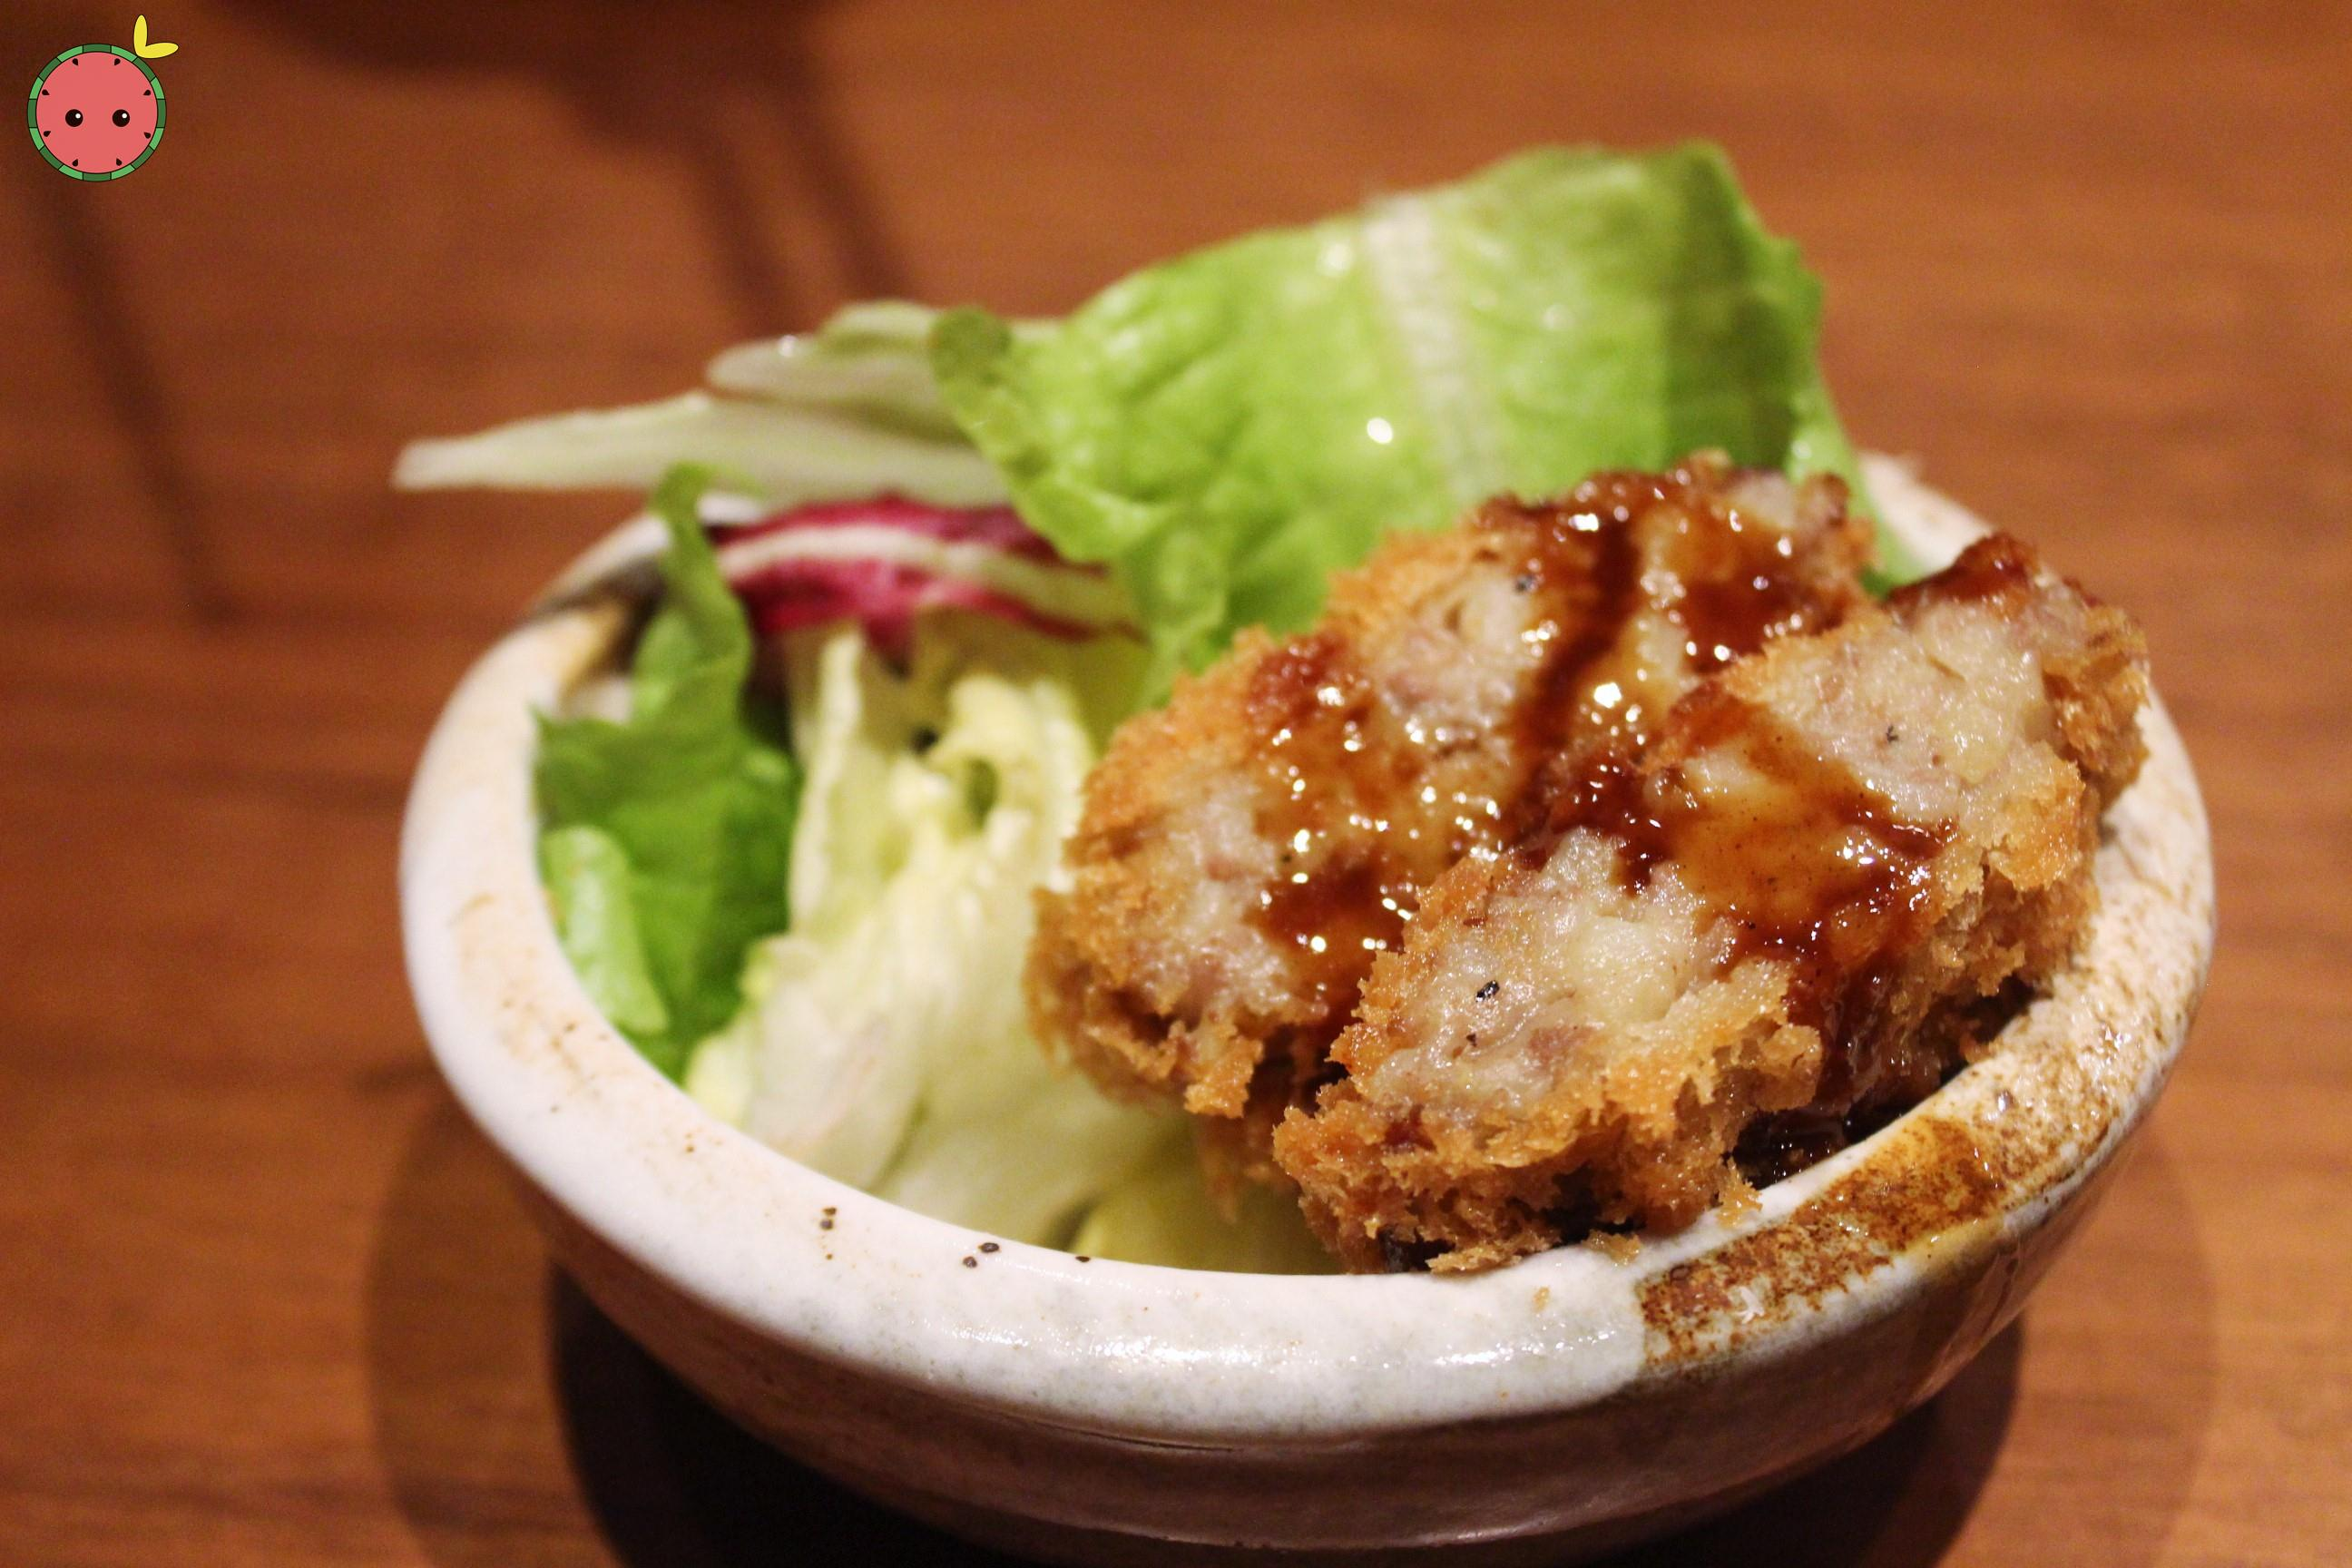 Potato Croquette - Fried croquette with mashed potato and minced beef, served with original tonkatsu